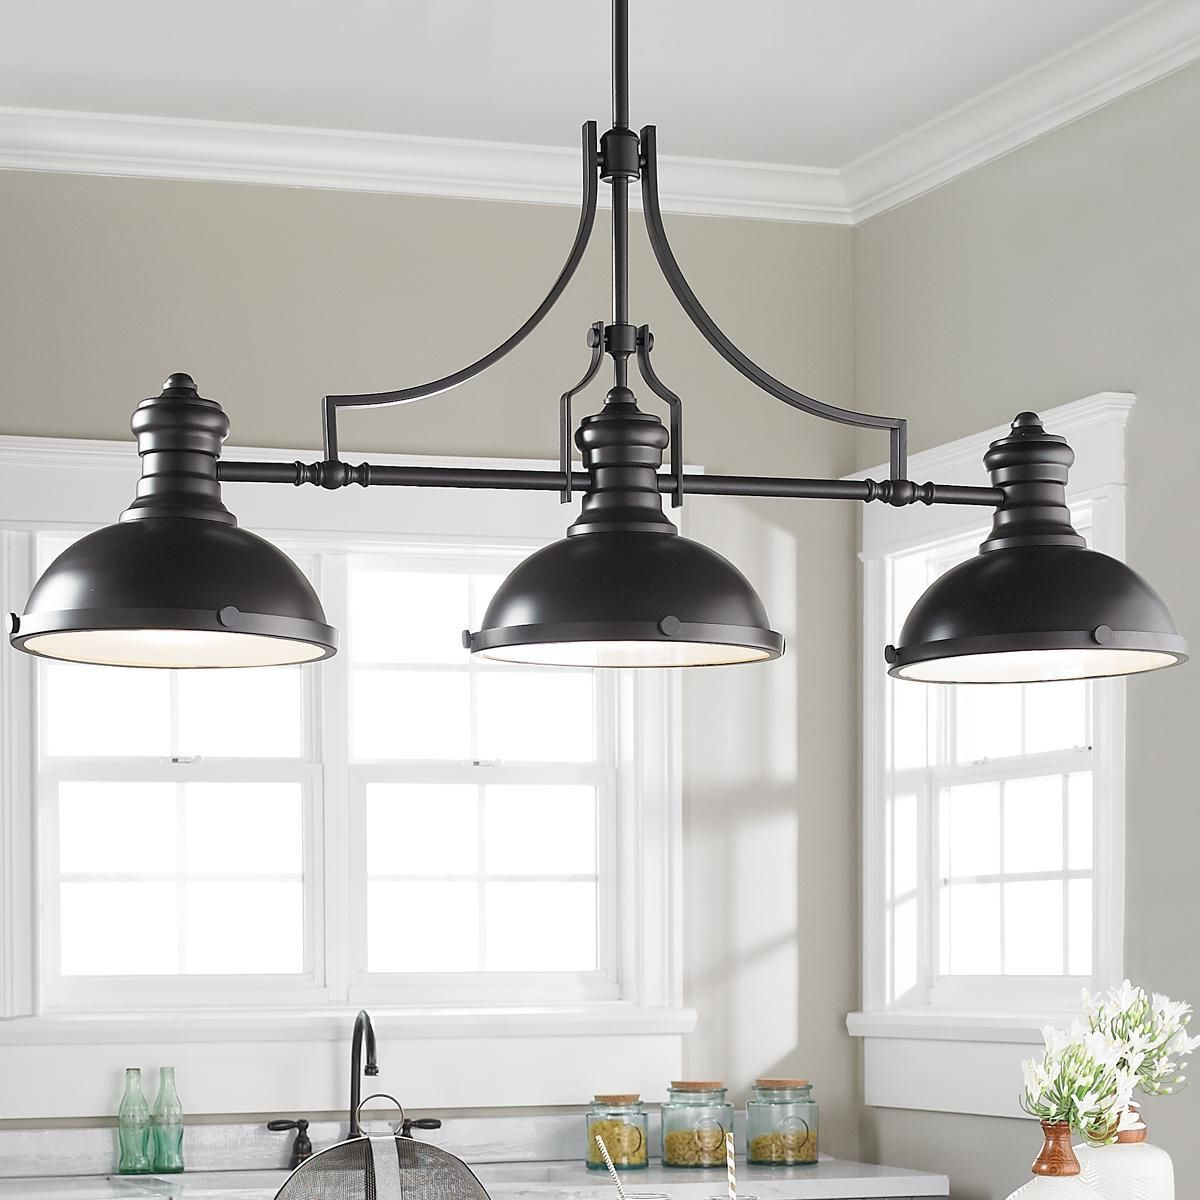 Martinique 3 Light Kitchen Island Dome Pendants Throughout Favorite Craftsman Period Island Chandelier – 3 Light (View 12 of 20)